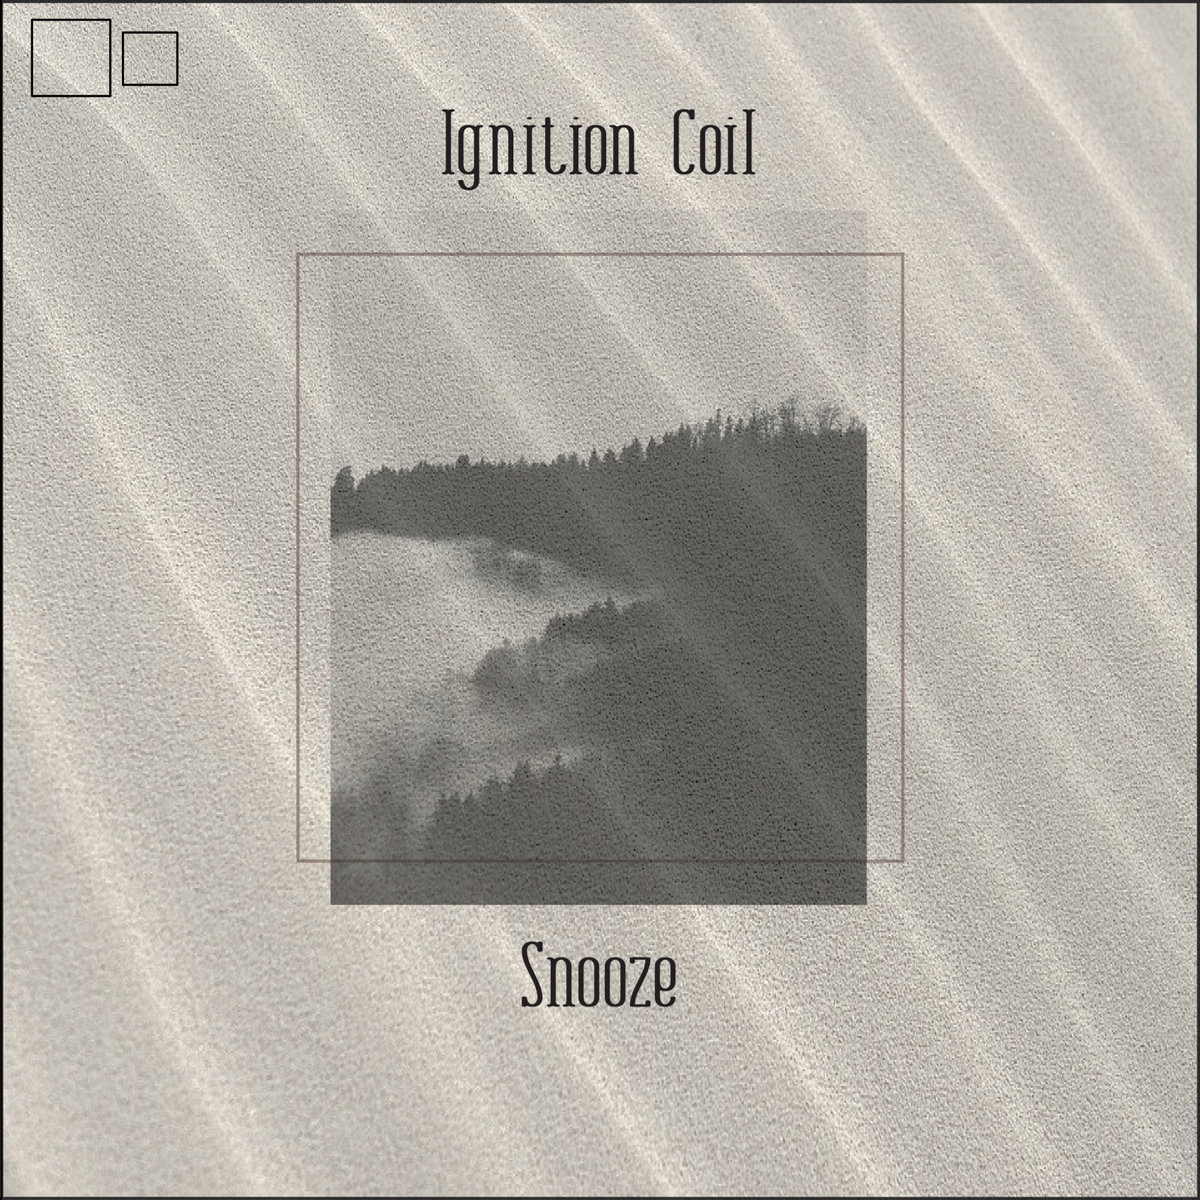 Ignition Coil – Snooze